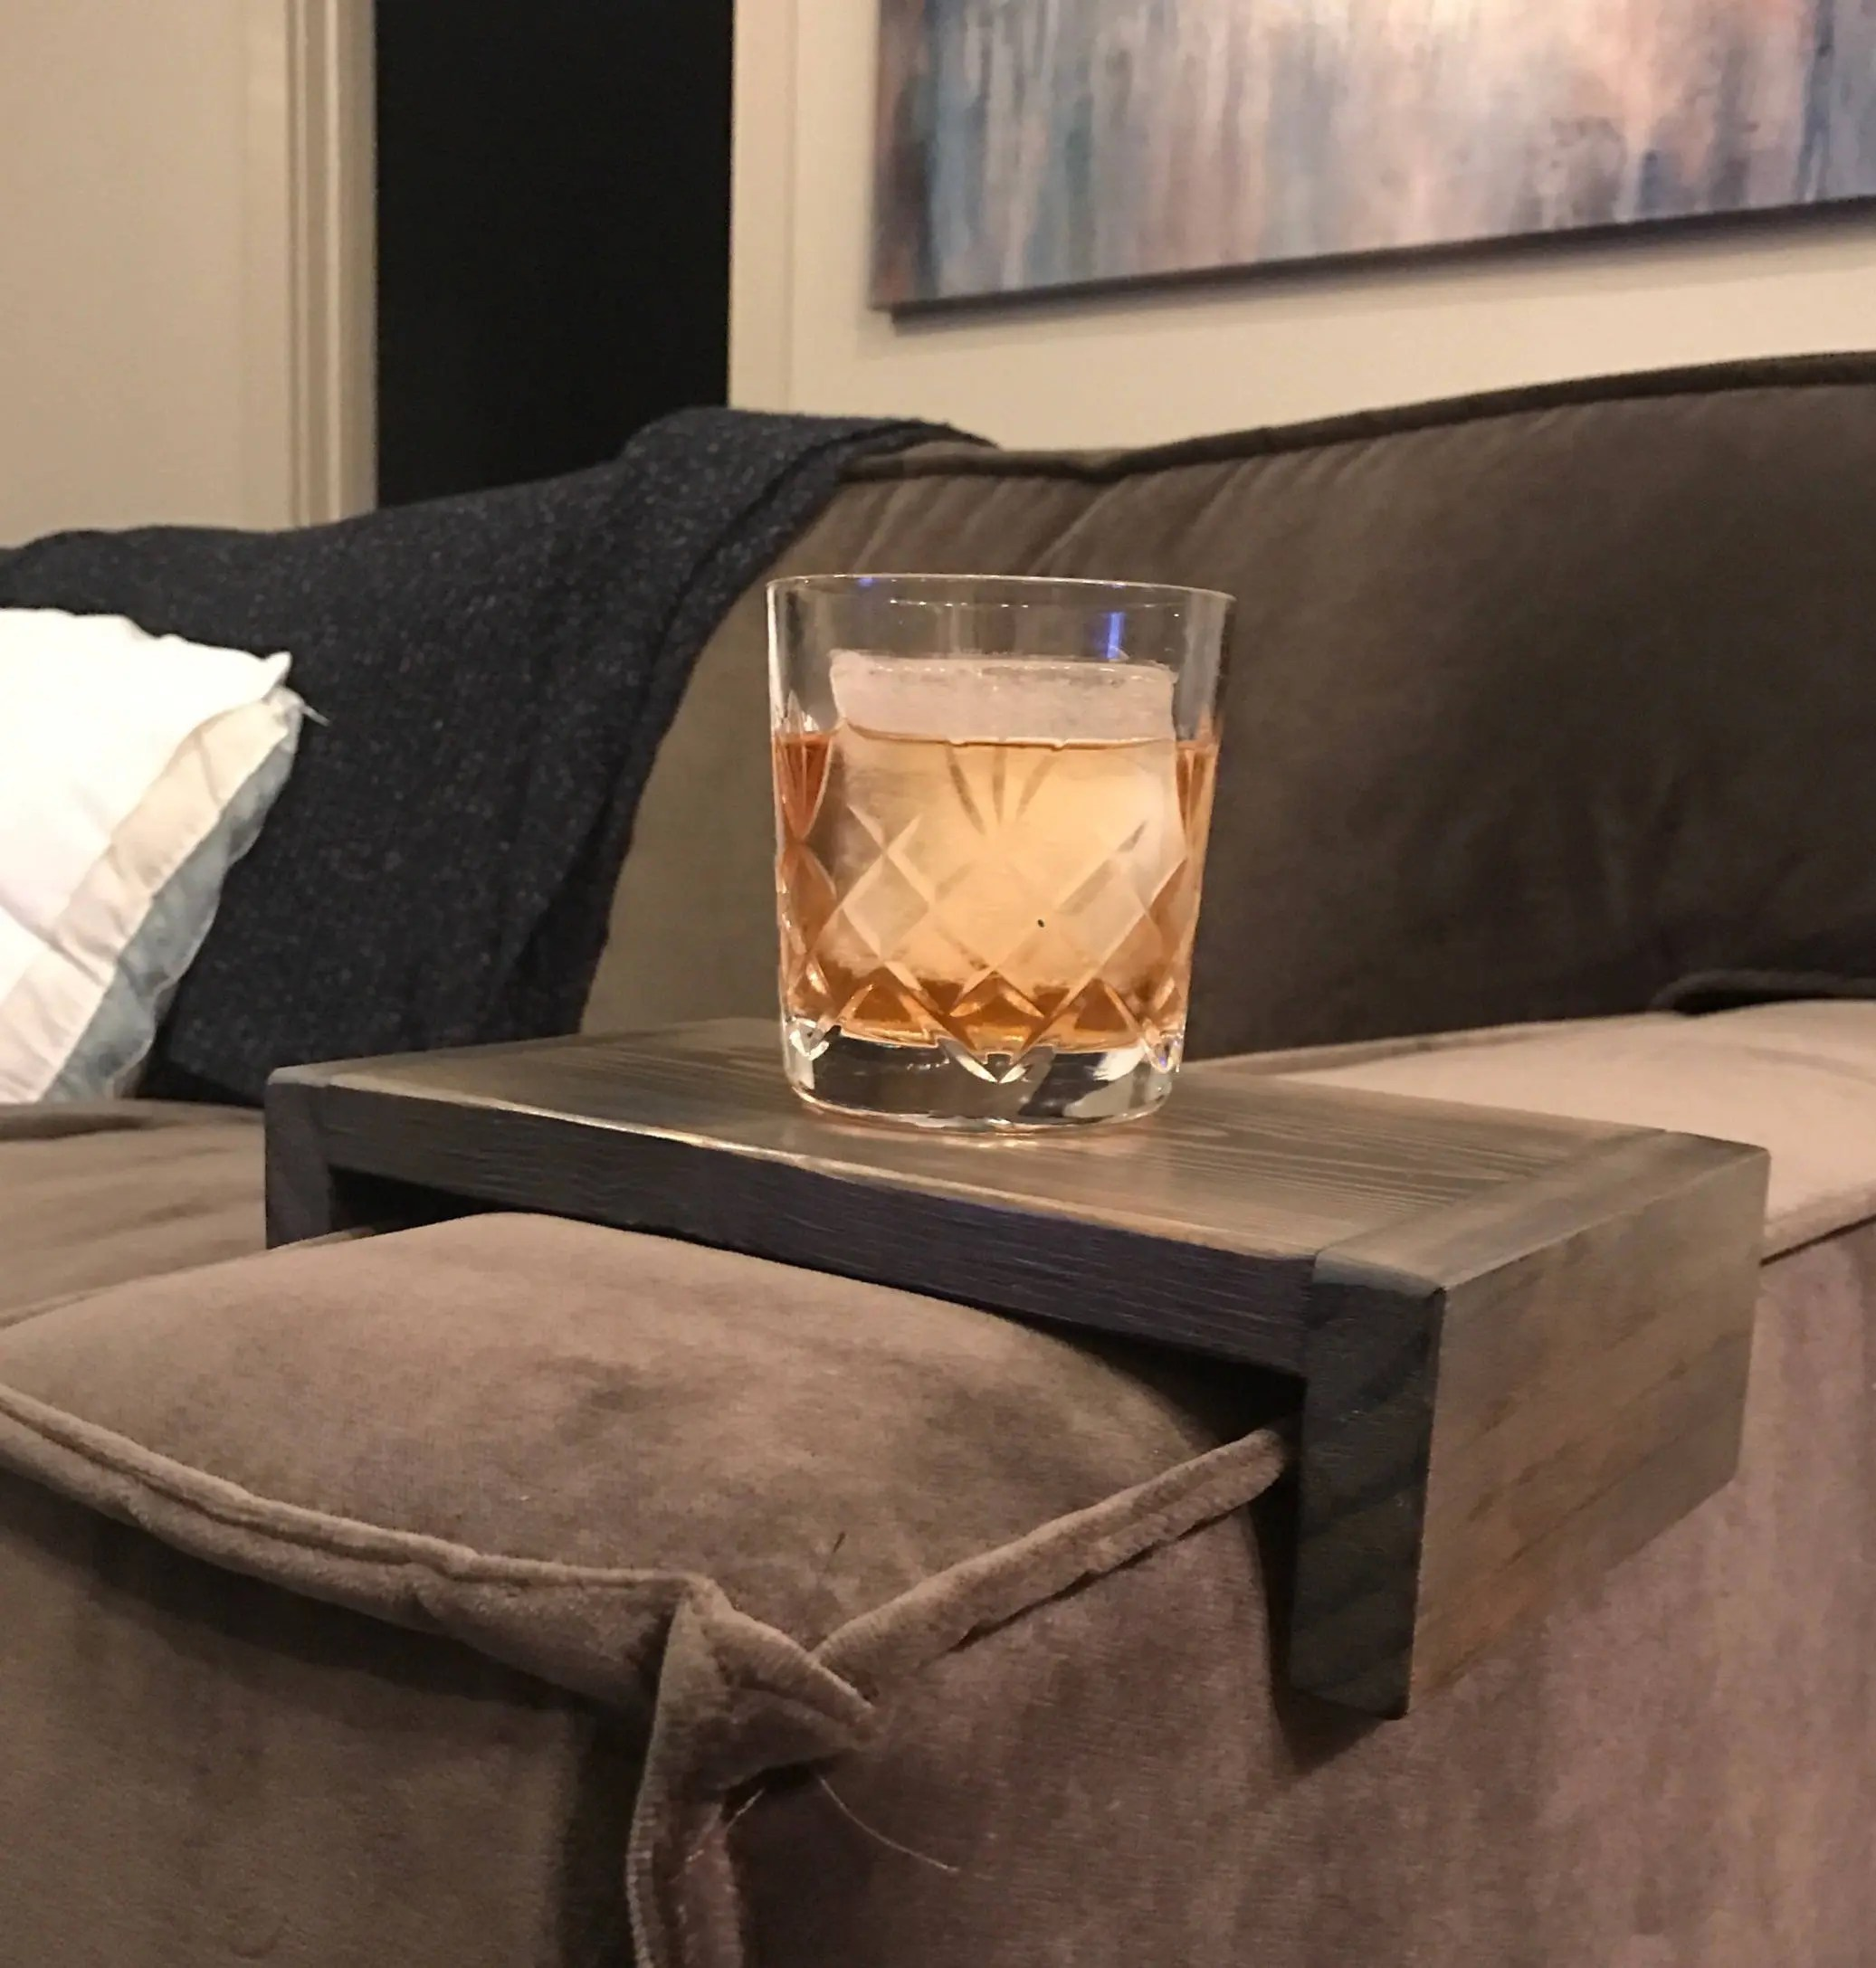 sofa armchair drink holder caddy wooden sofas uk couch cup   etsy